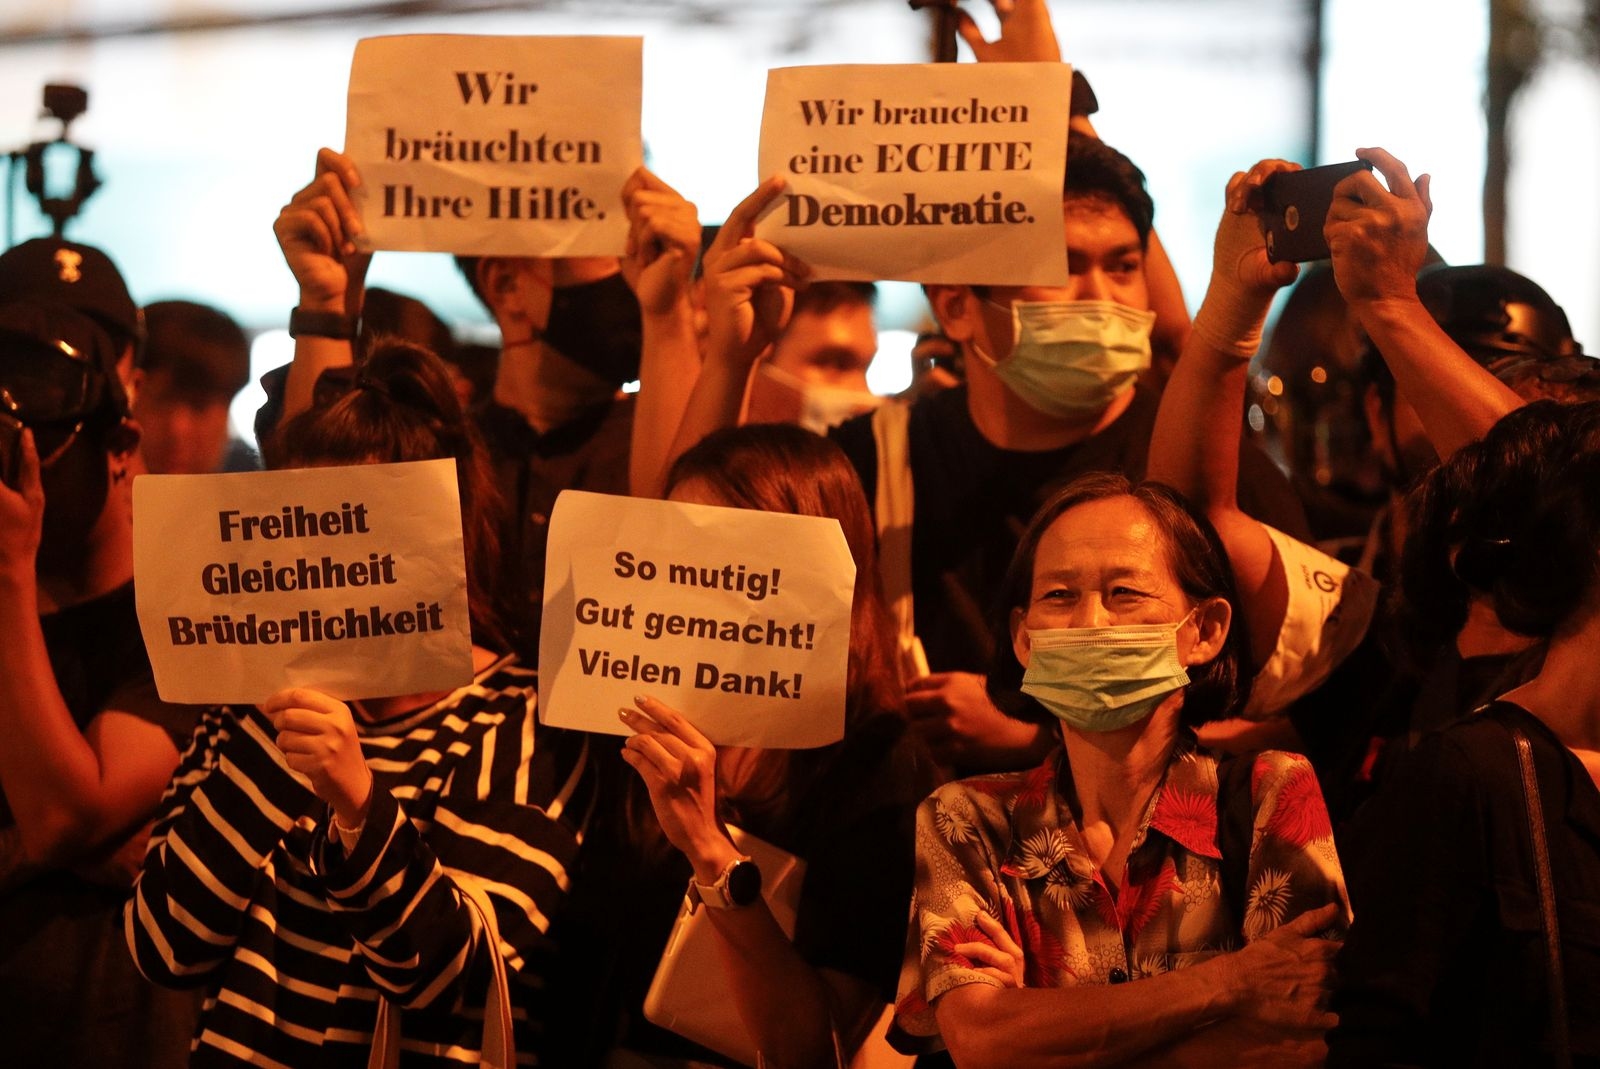 Pro-democracy demonstrators hold placards as they protest outside the German Embassy, in Bangkok